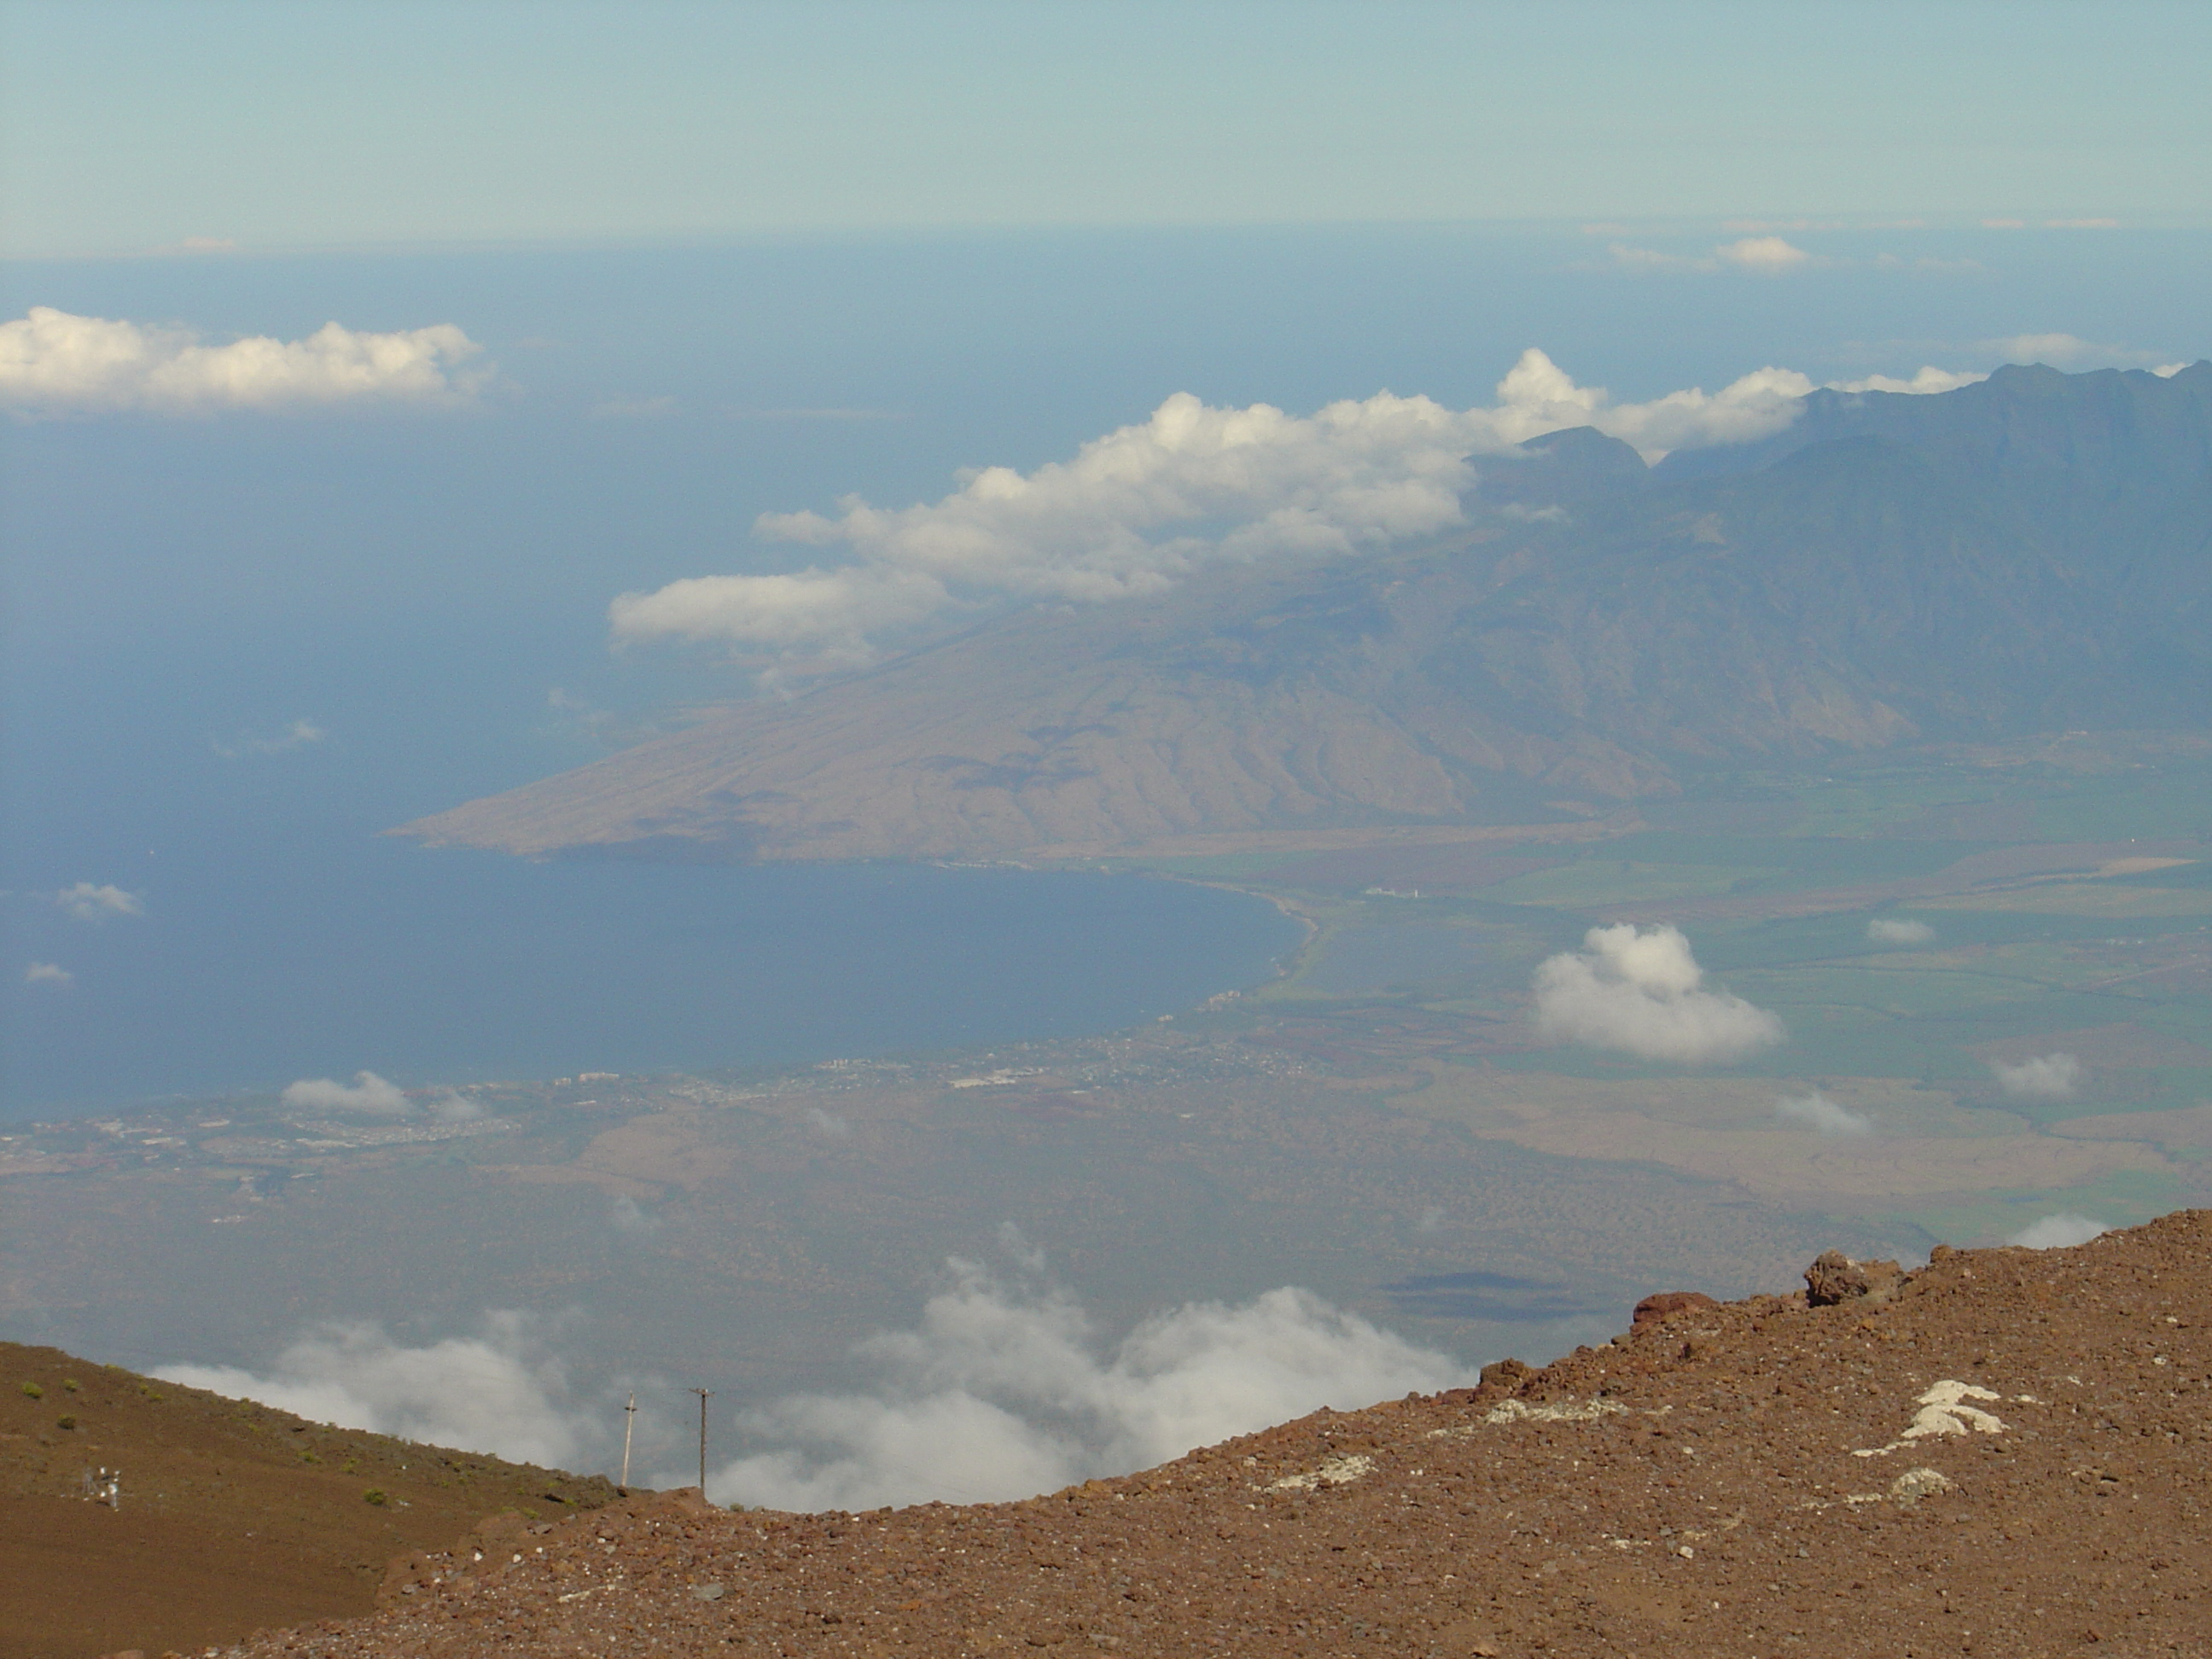 View from Haleakala looking towards Kihei